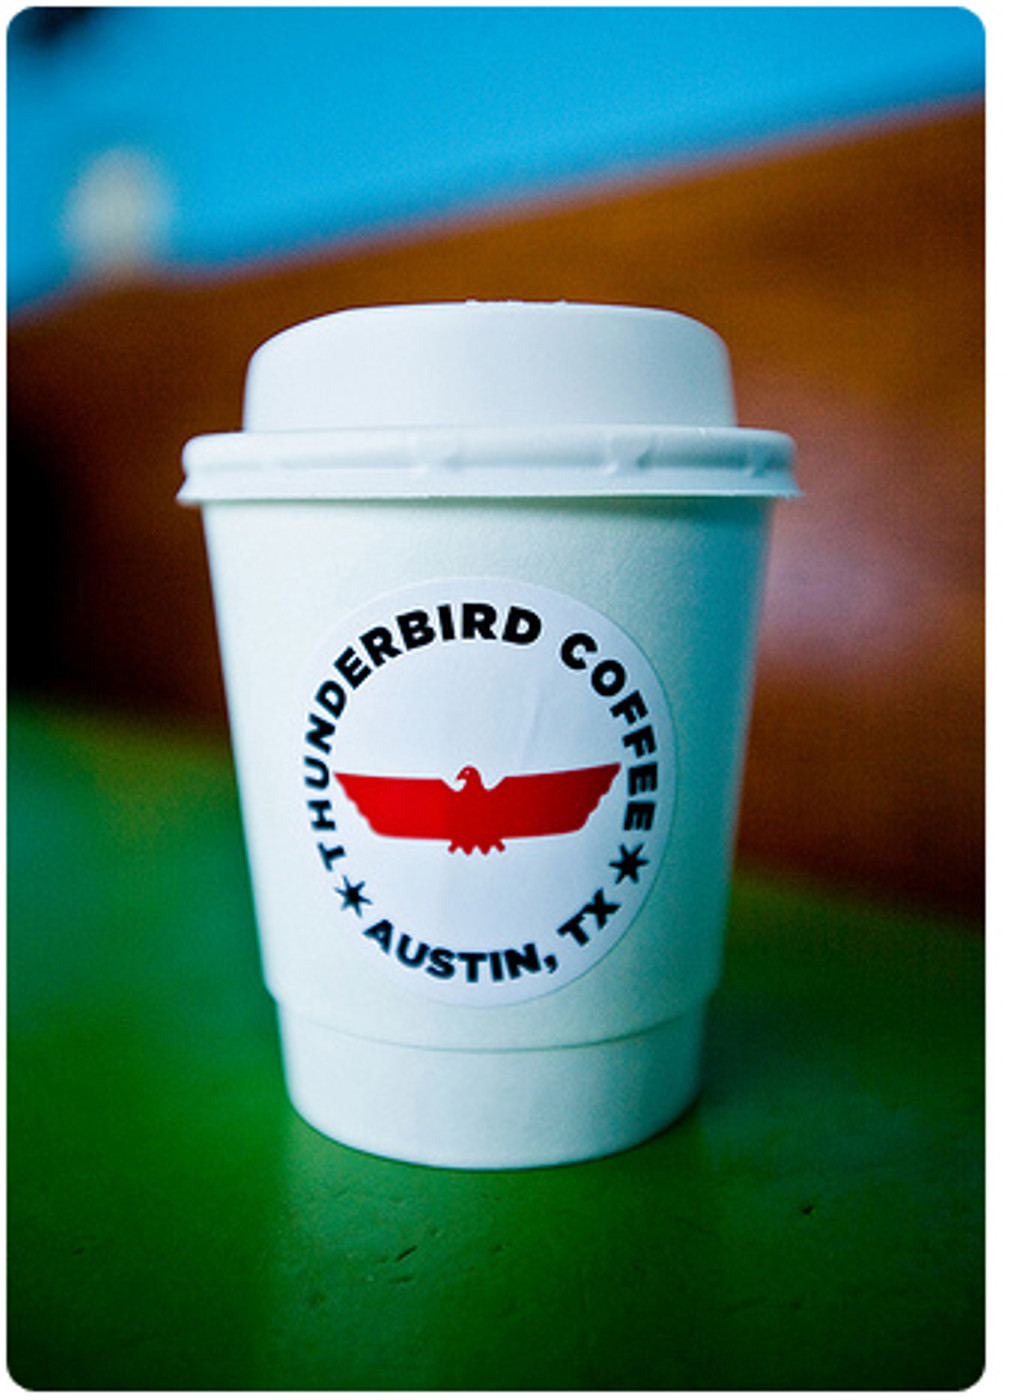 Oct 20th FREE POP UP! @Thunderbird Coffee